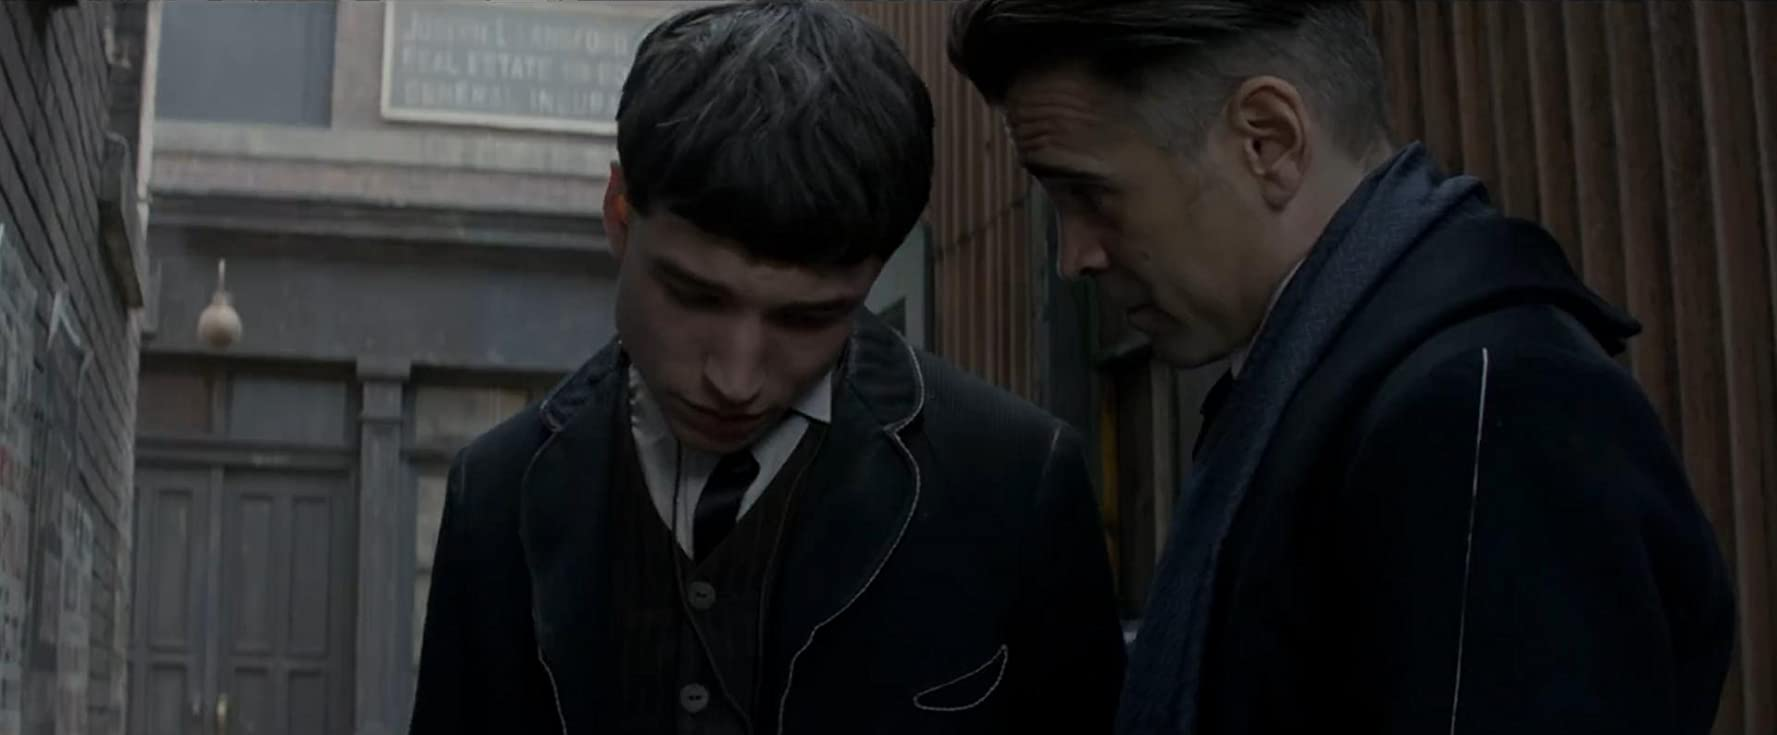 Colin Farrell and Ezra Miller in Fantastic Beasts and Where to Find Them (2016)